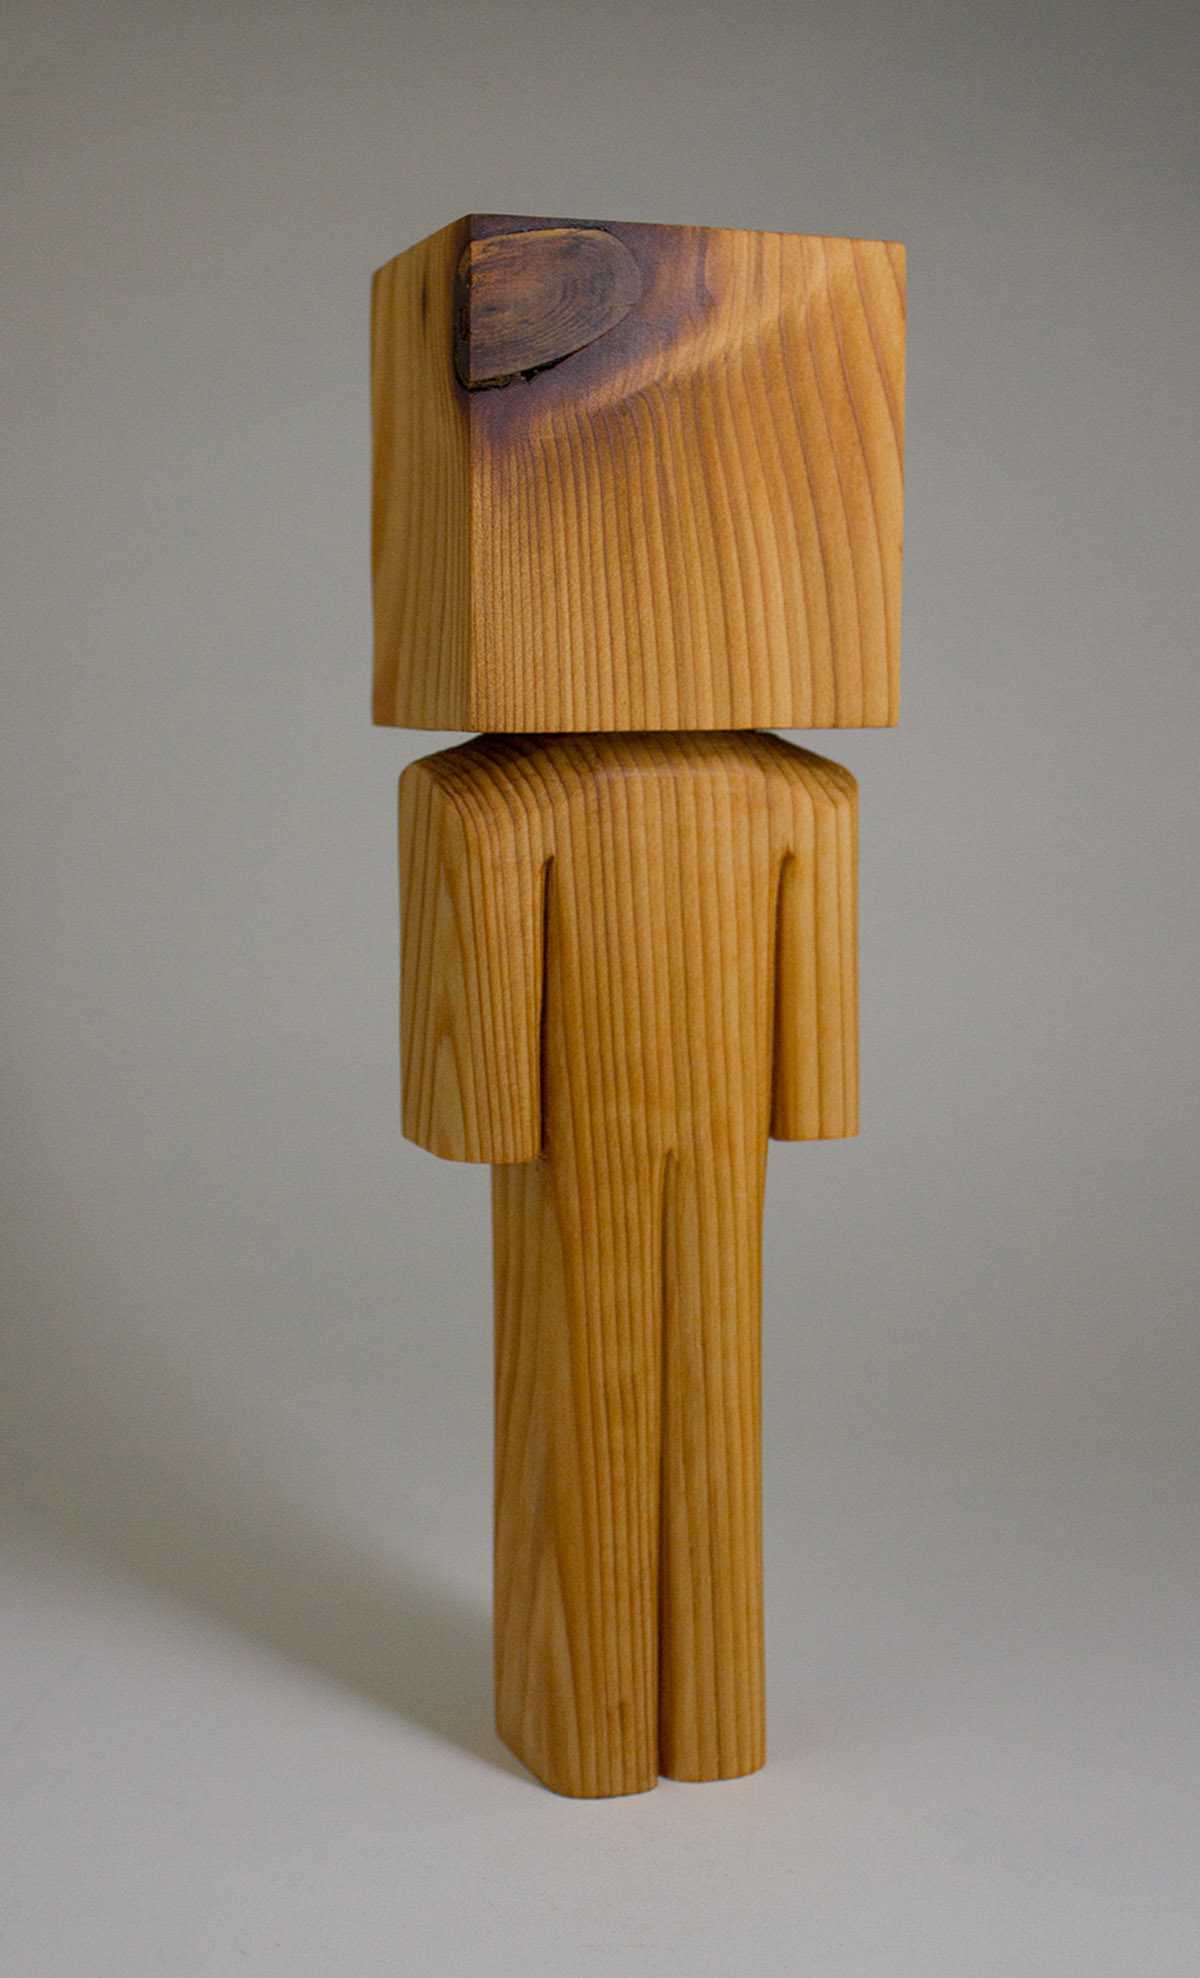 Untitled cedar & beeswax 10×2.75×2.25 inches